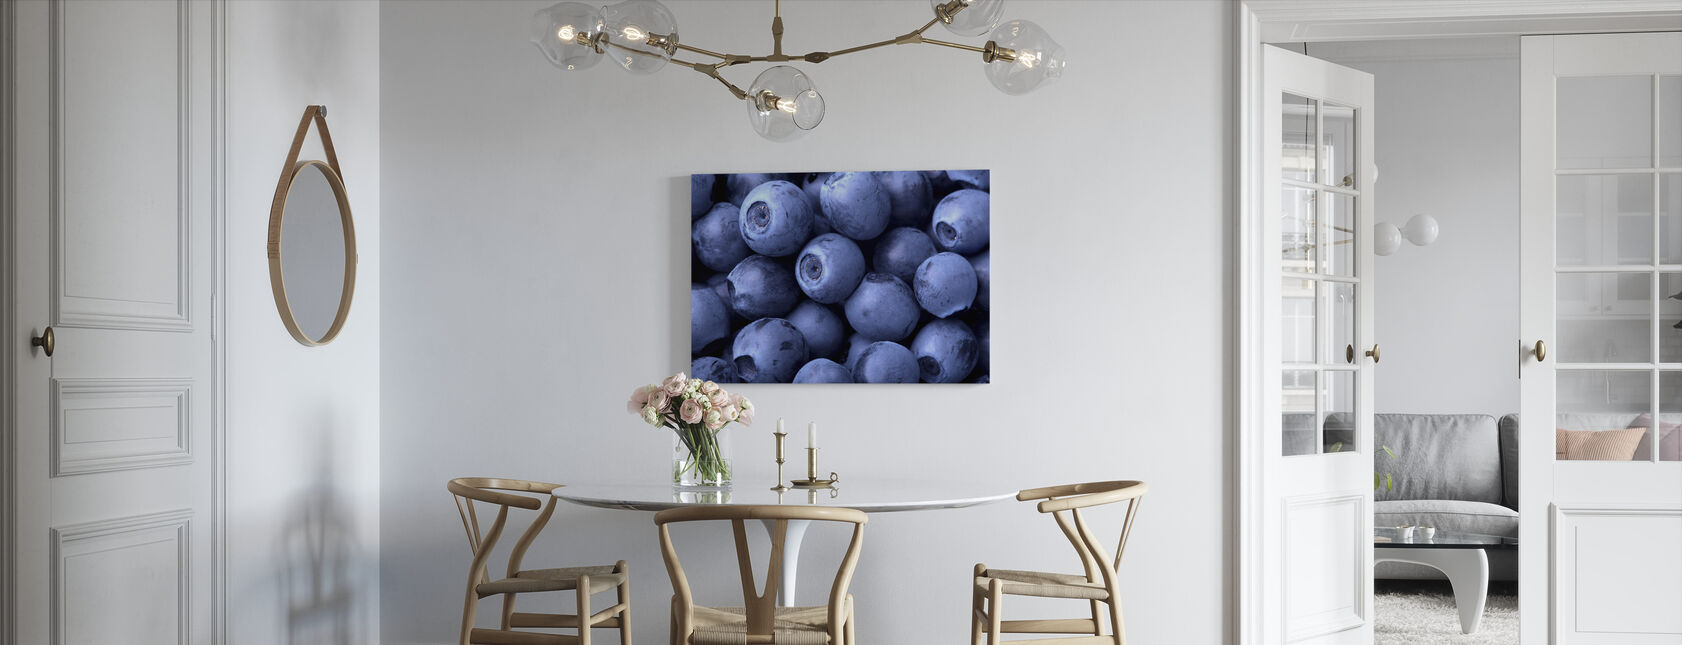 Blueberries - Canvas print - Kitchen